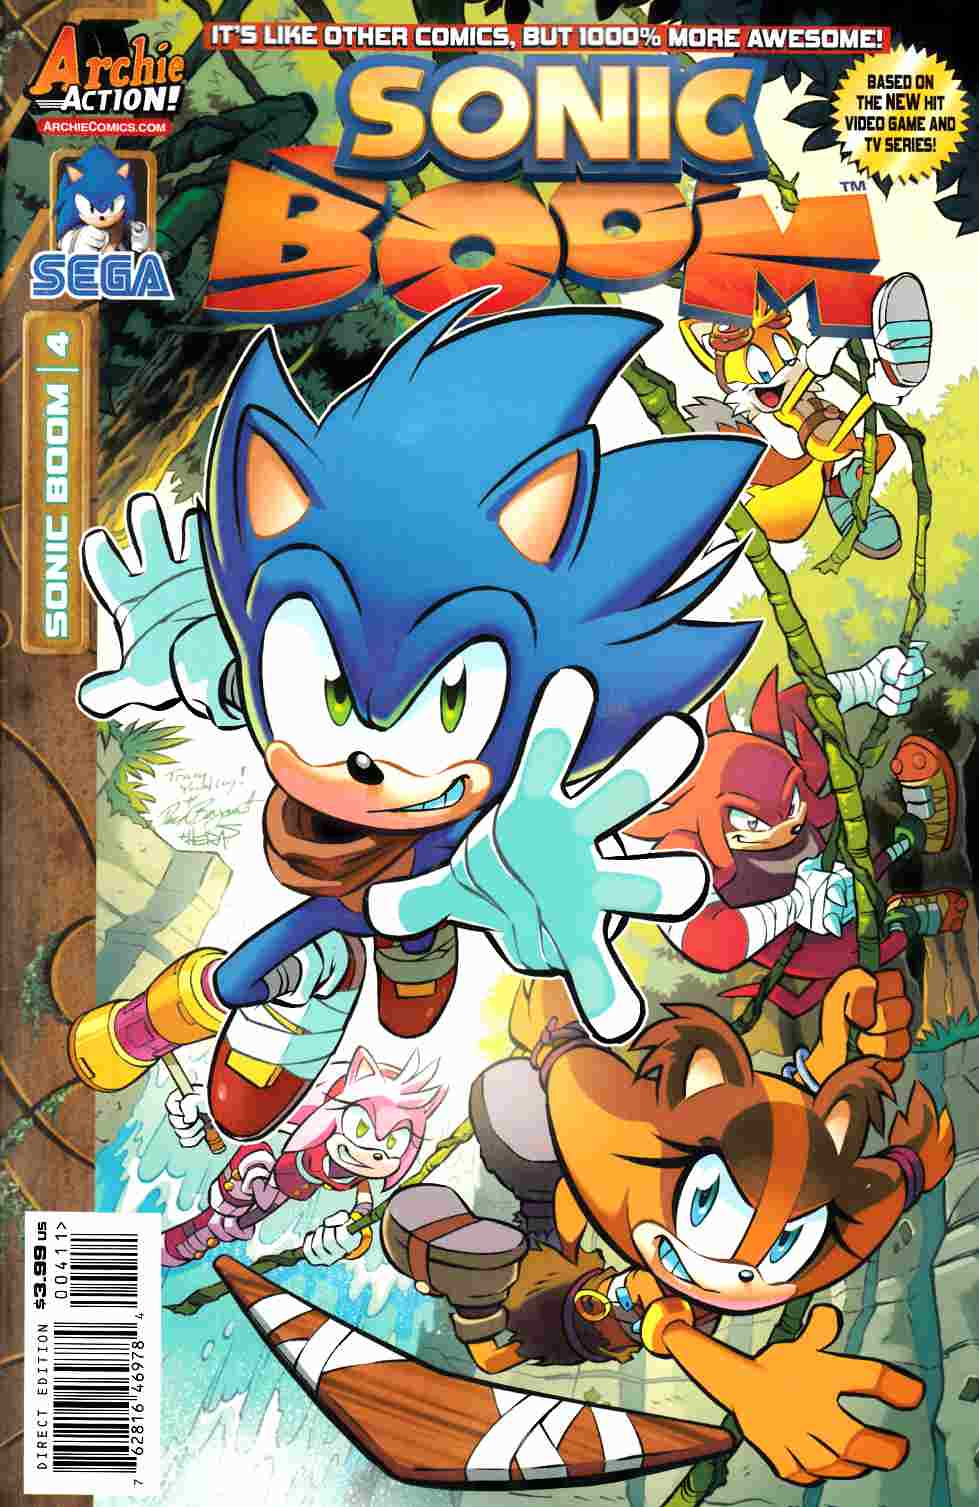 Sonic Boom #4 [Archie Comic] THUMBNAIL